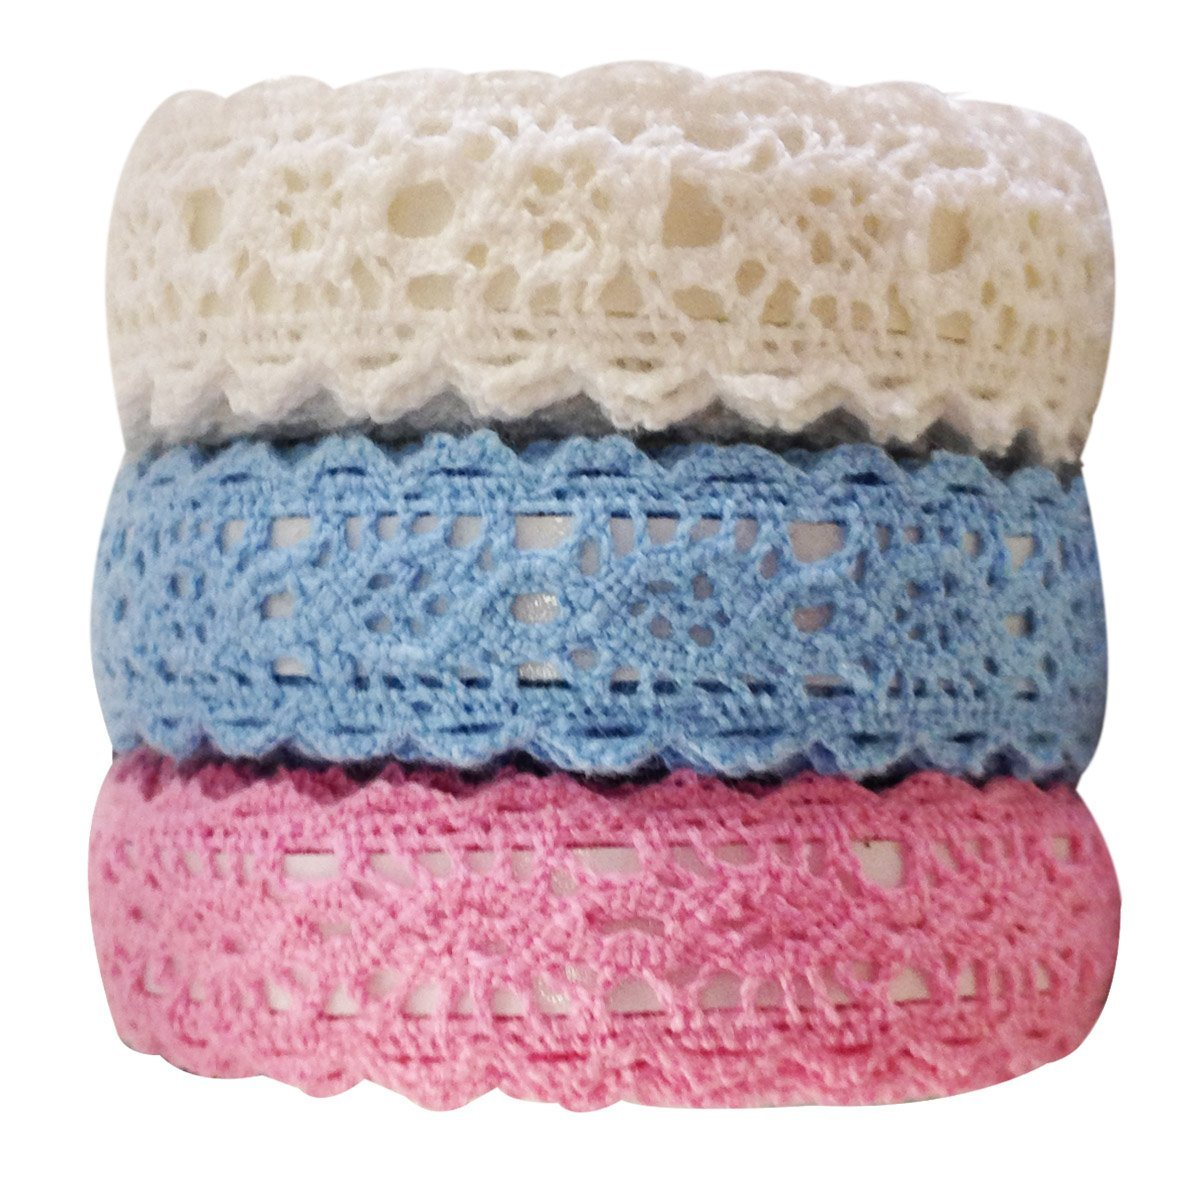 Wrapables Decorative Lace Tape (Set of 3)